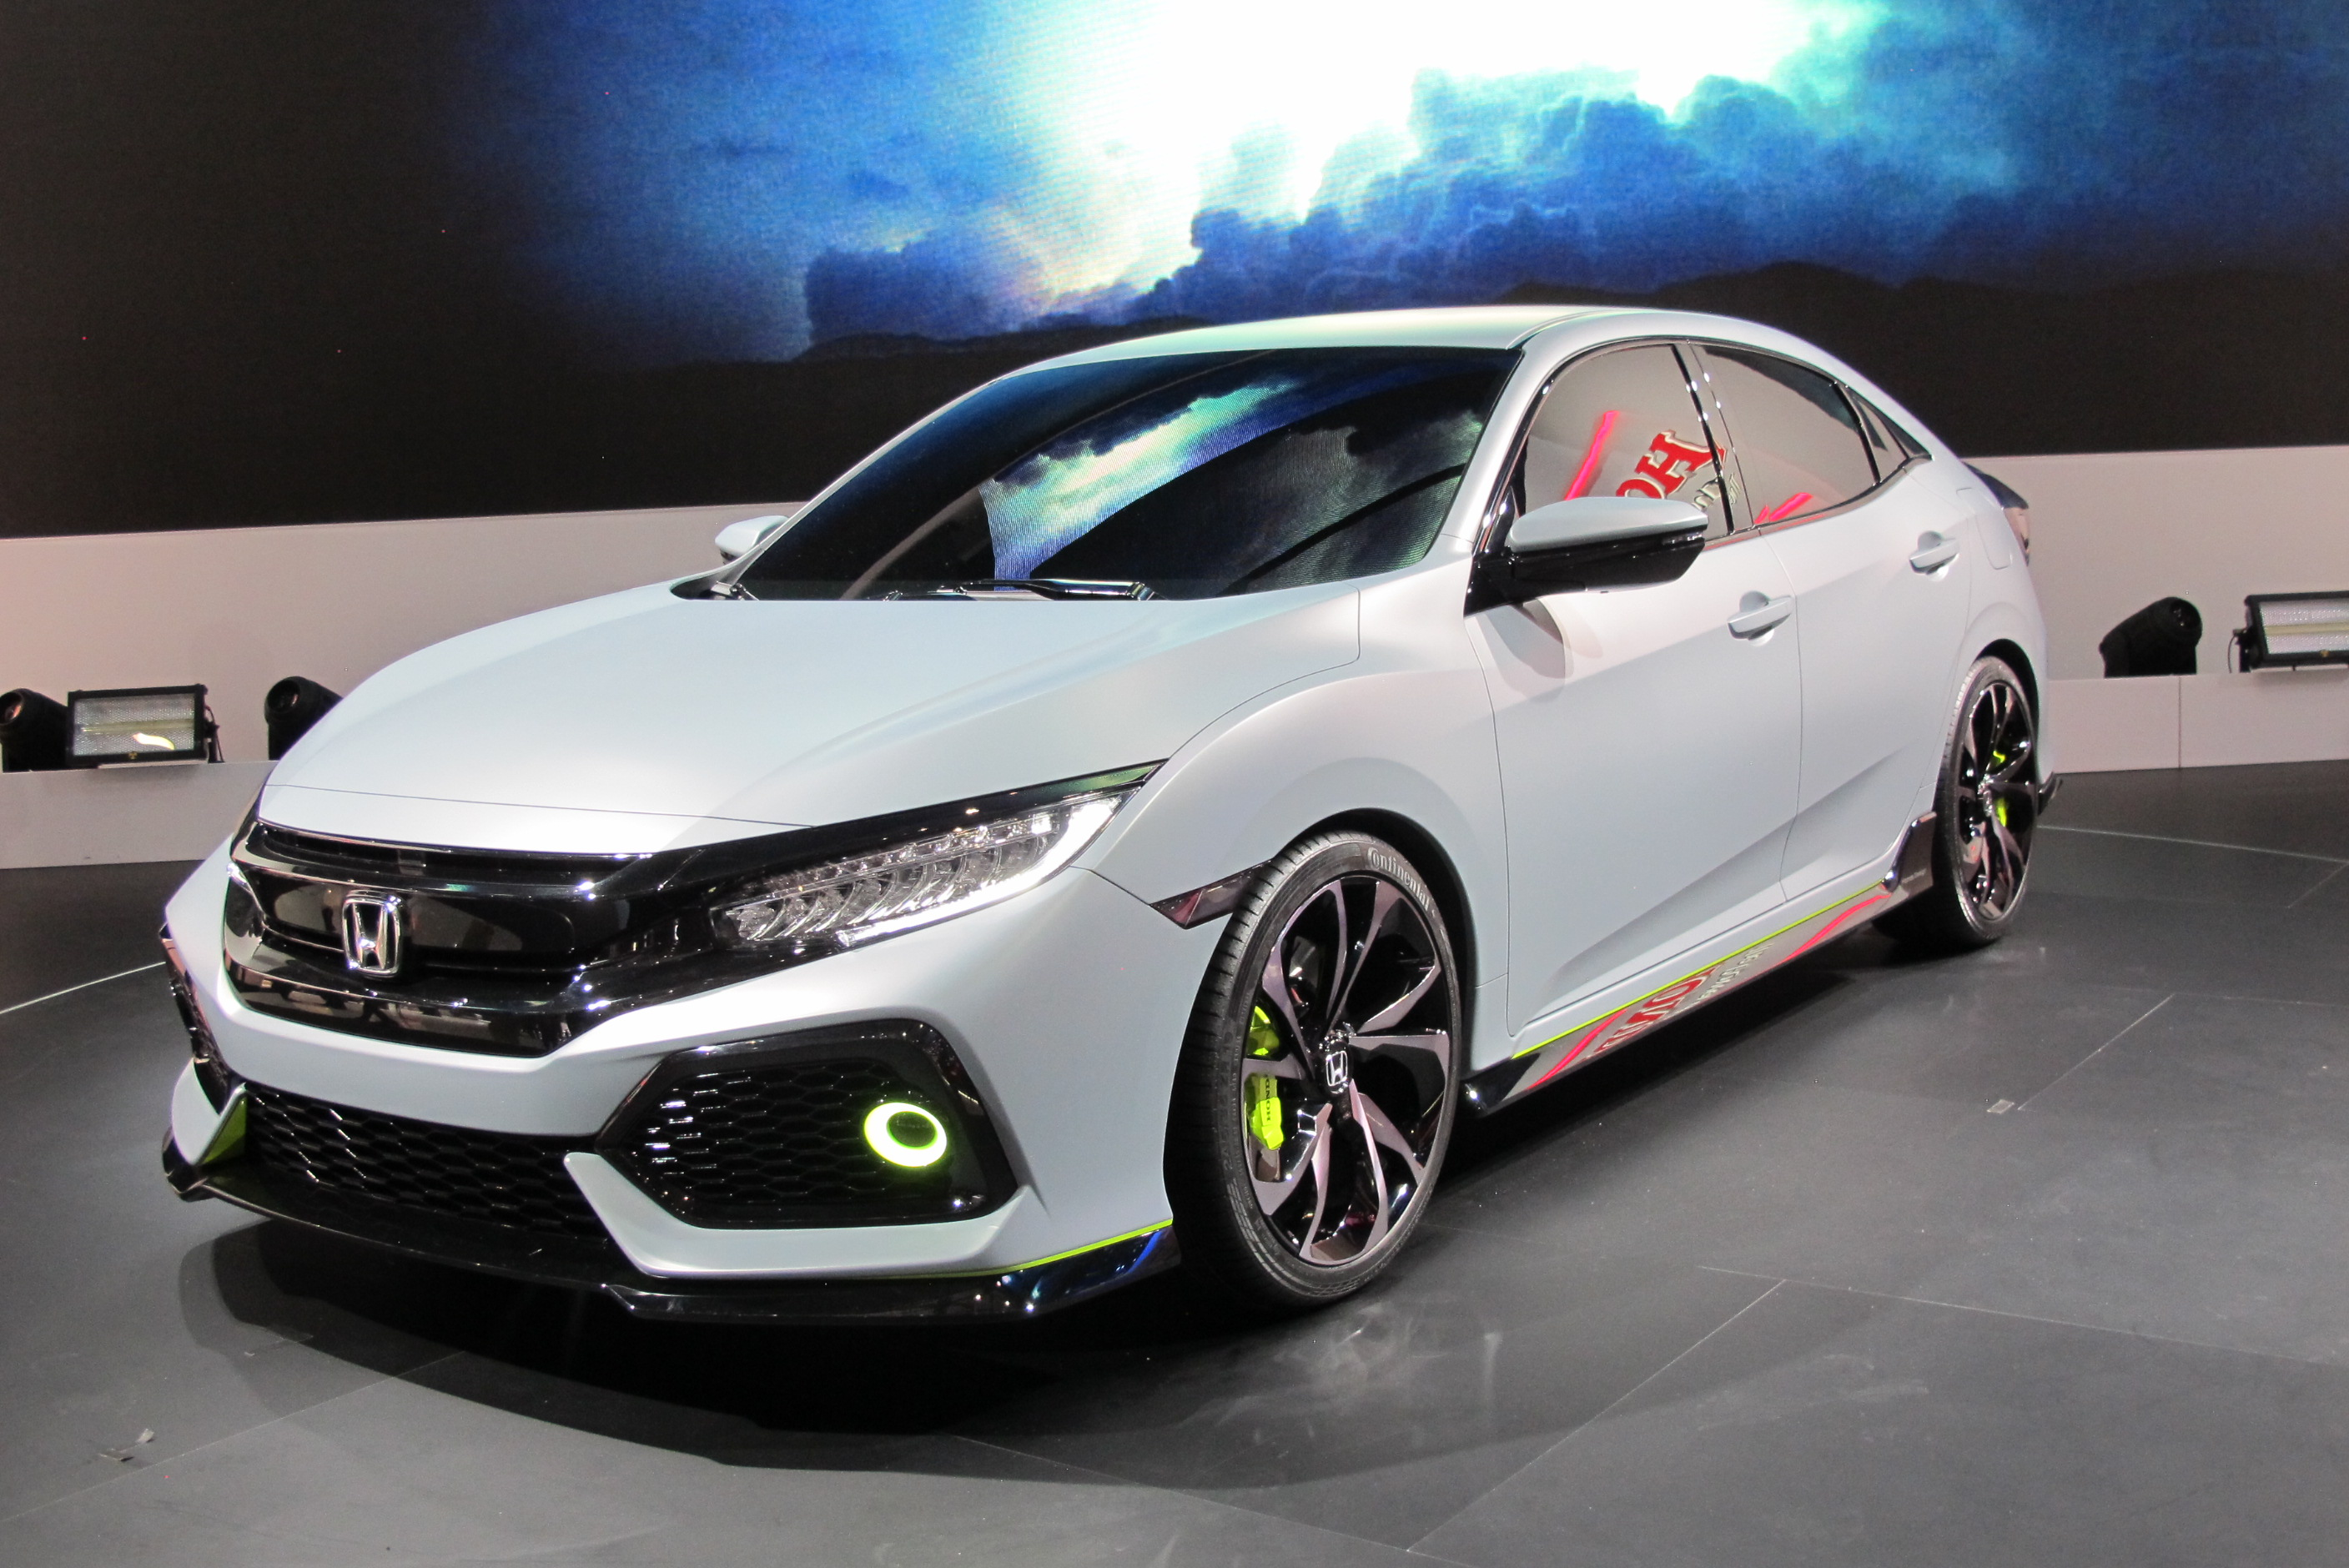 Honda Civic 2016 Vs 2017 >> 2017 Honda Civic Hatchback Unveiled In Geneva